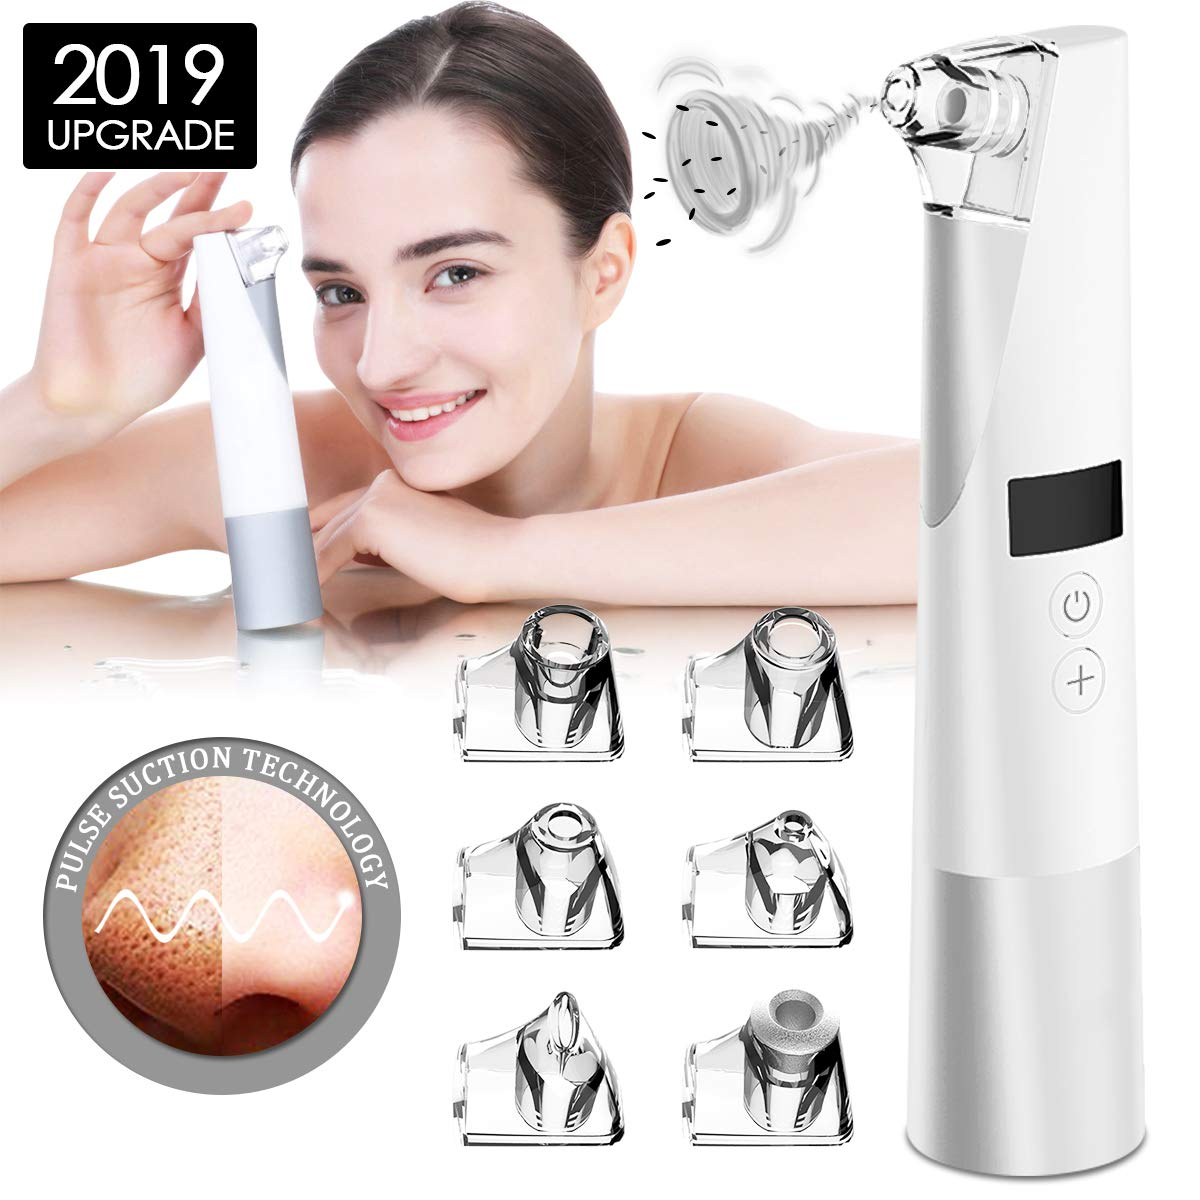 Blackhead Remover with 6 Changeable Functional Probes Electric Facial Pore Cleanser Electric Acne Comedone Extractor Kit Facial Pore Extractor for Acne Grease Dirt Dead skin (White)